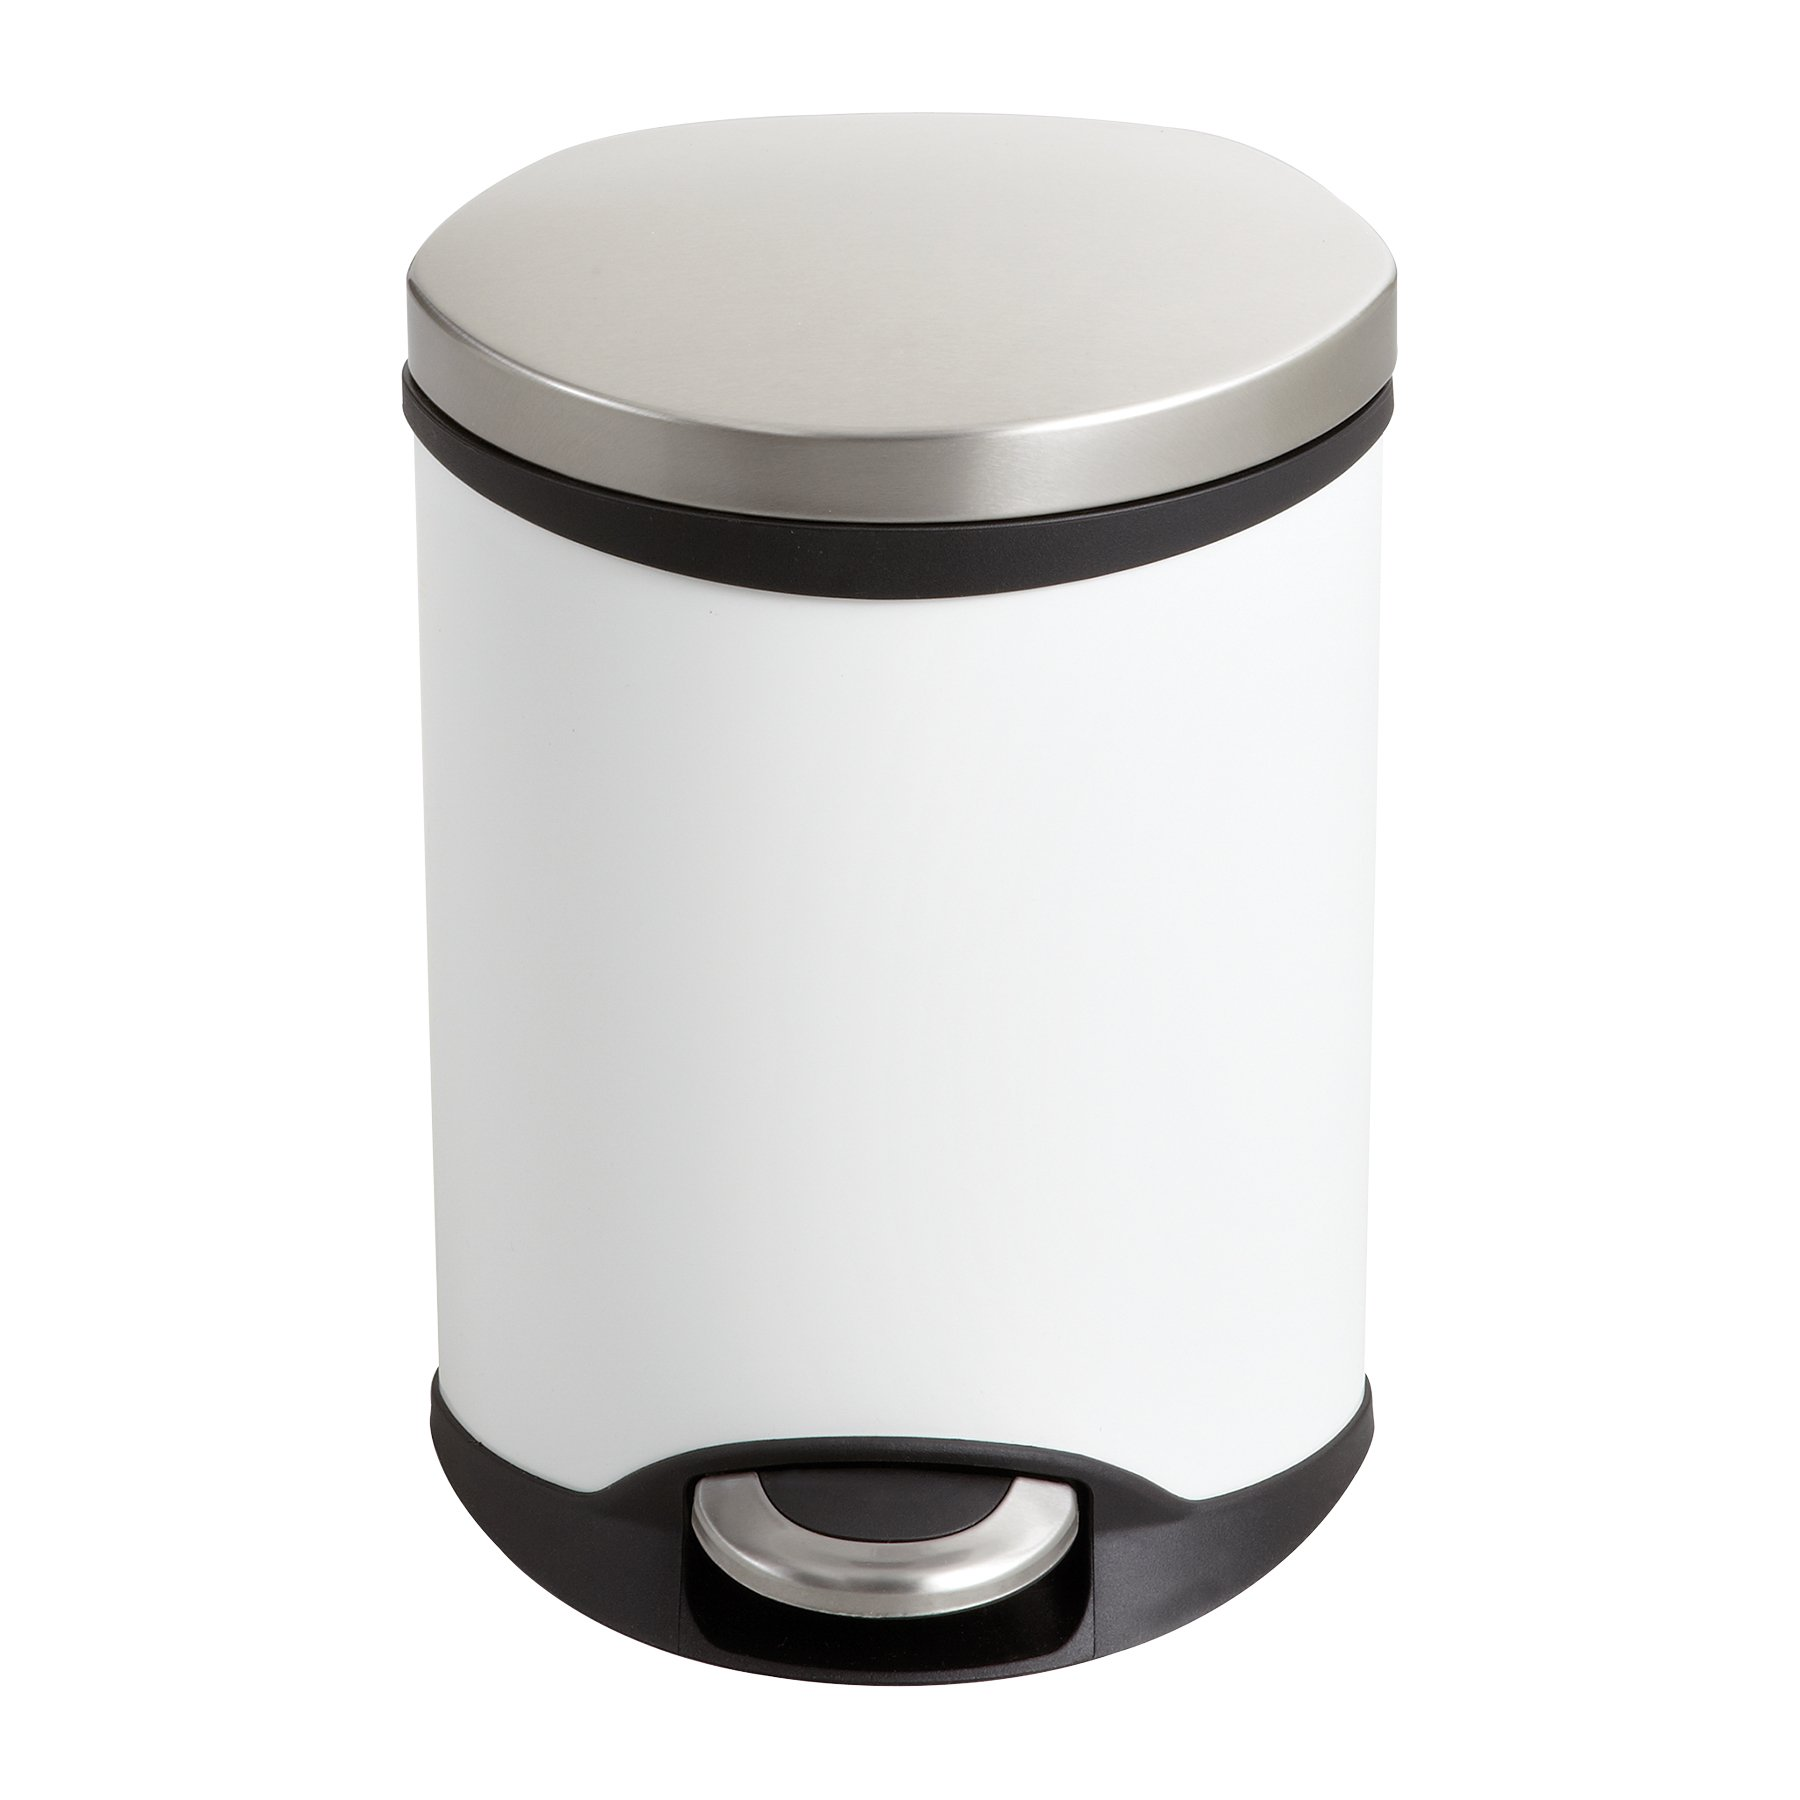 Safco Products 9900WH Ellipse Step-On Trash Can, 1 1/2-Gallon, White